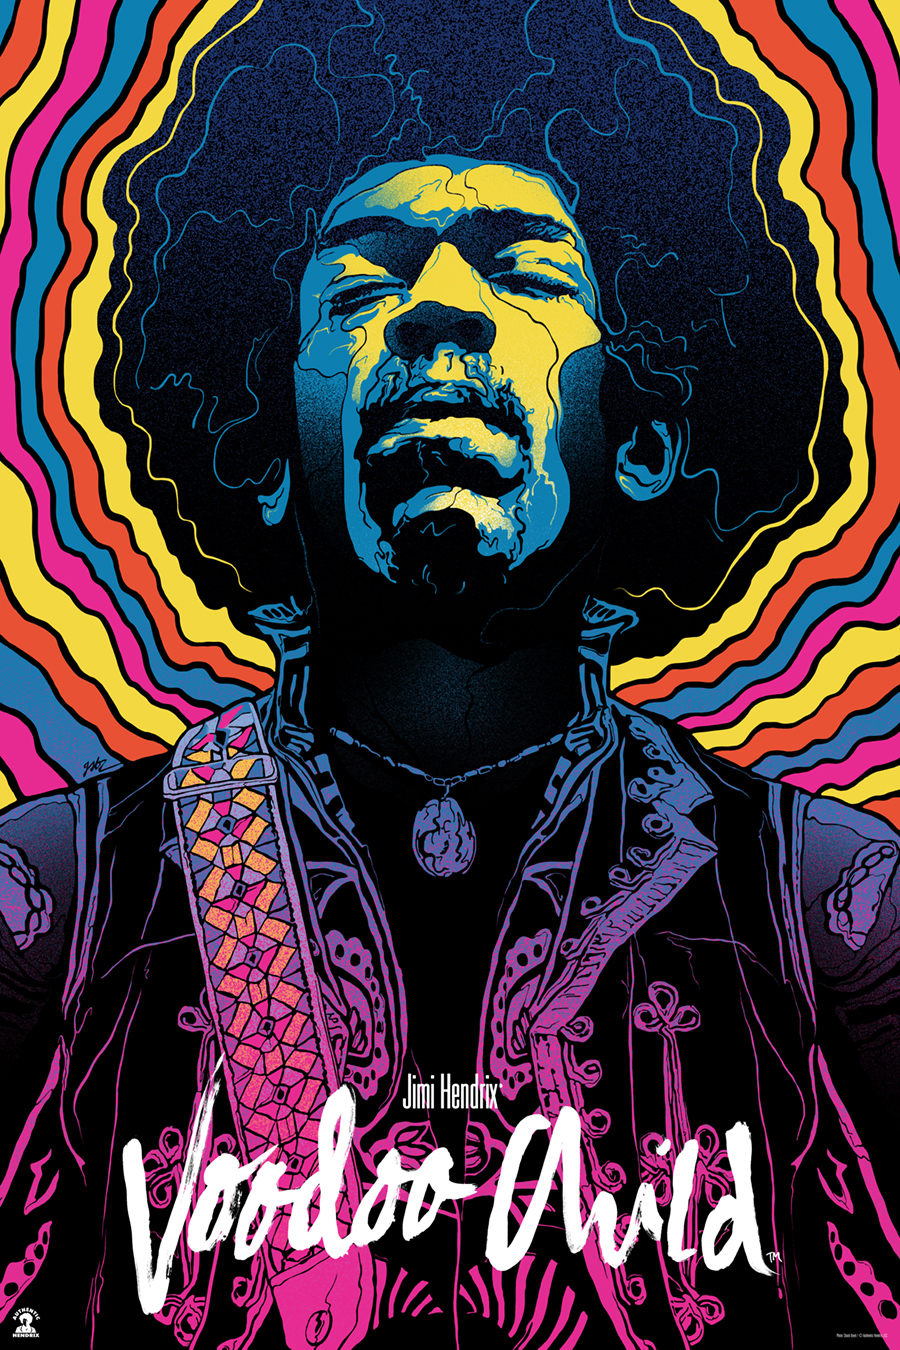 Inside the rock poster frame blog gabz jimi hendrix for Poster prints for sale